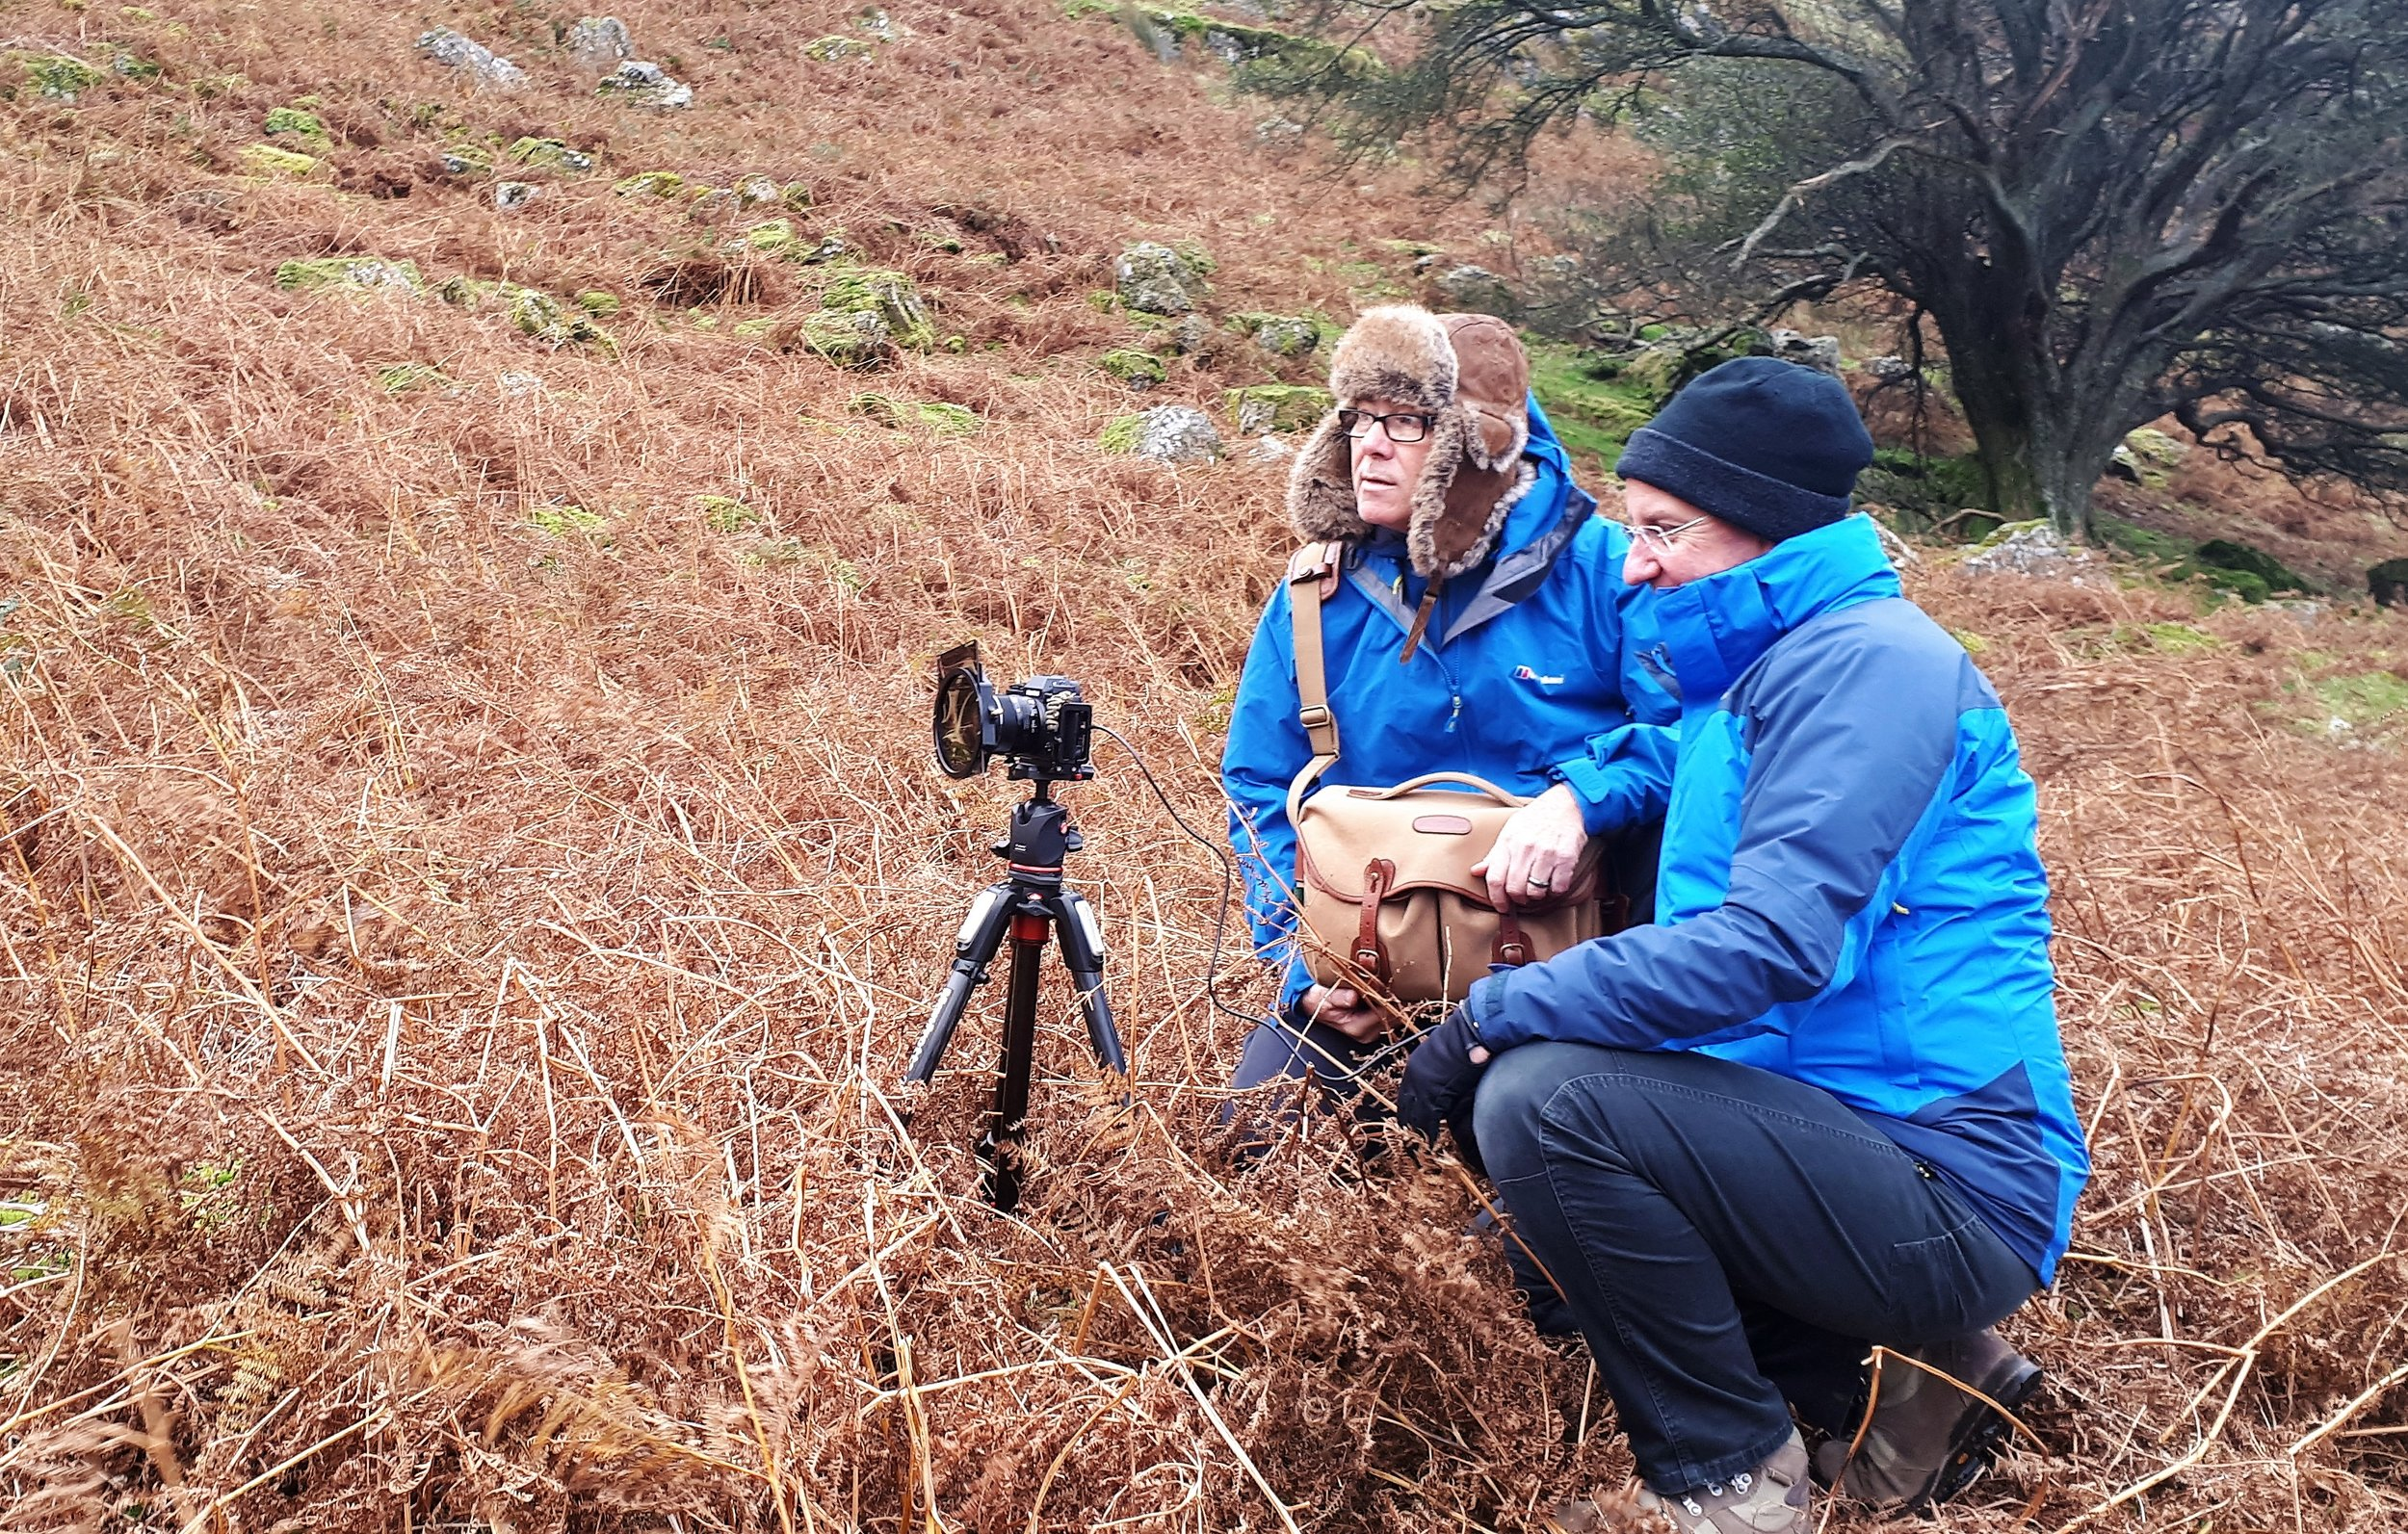 Sheldon on his second workshop with me this time at Rannerdale. Now using his newly acquired  FUJIFILM XT-2 . No Blue Bells at this time of year but still a beautiful place. My bald bonce feels the cold hence the trappers hat. My trusty old Billingham bag still looking good after all these years of service too. Photo by kind permission of Vicki Proctor.